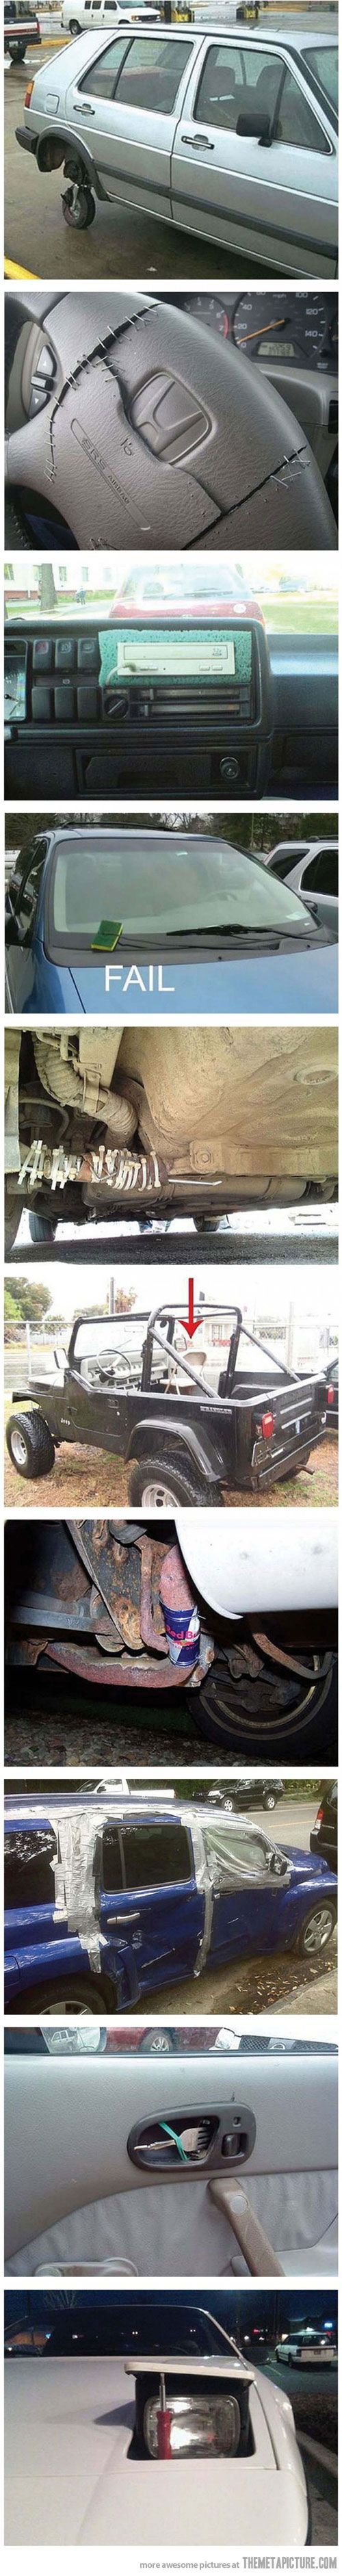 """I want to title this """"You Might be a Redneck if You Fix Your Car Like This...  """""""